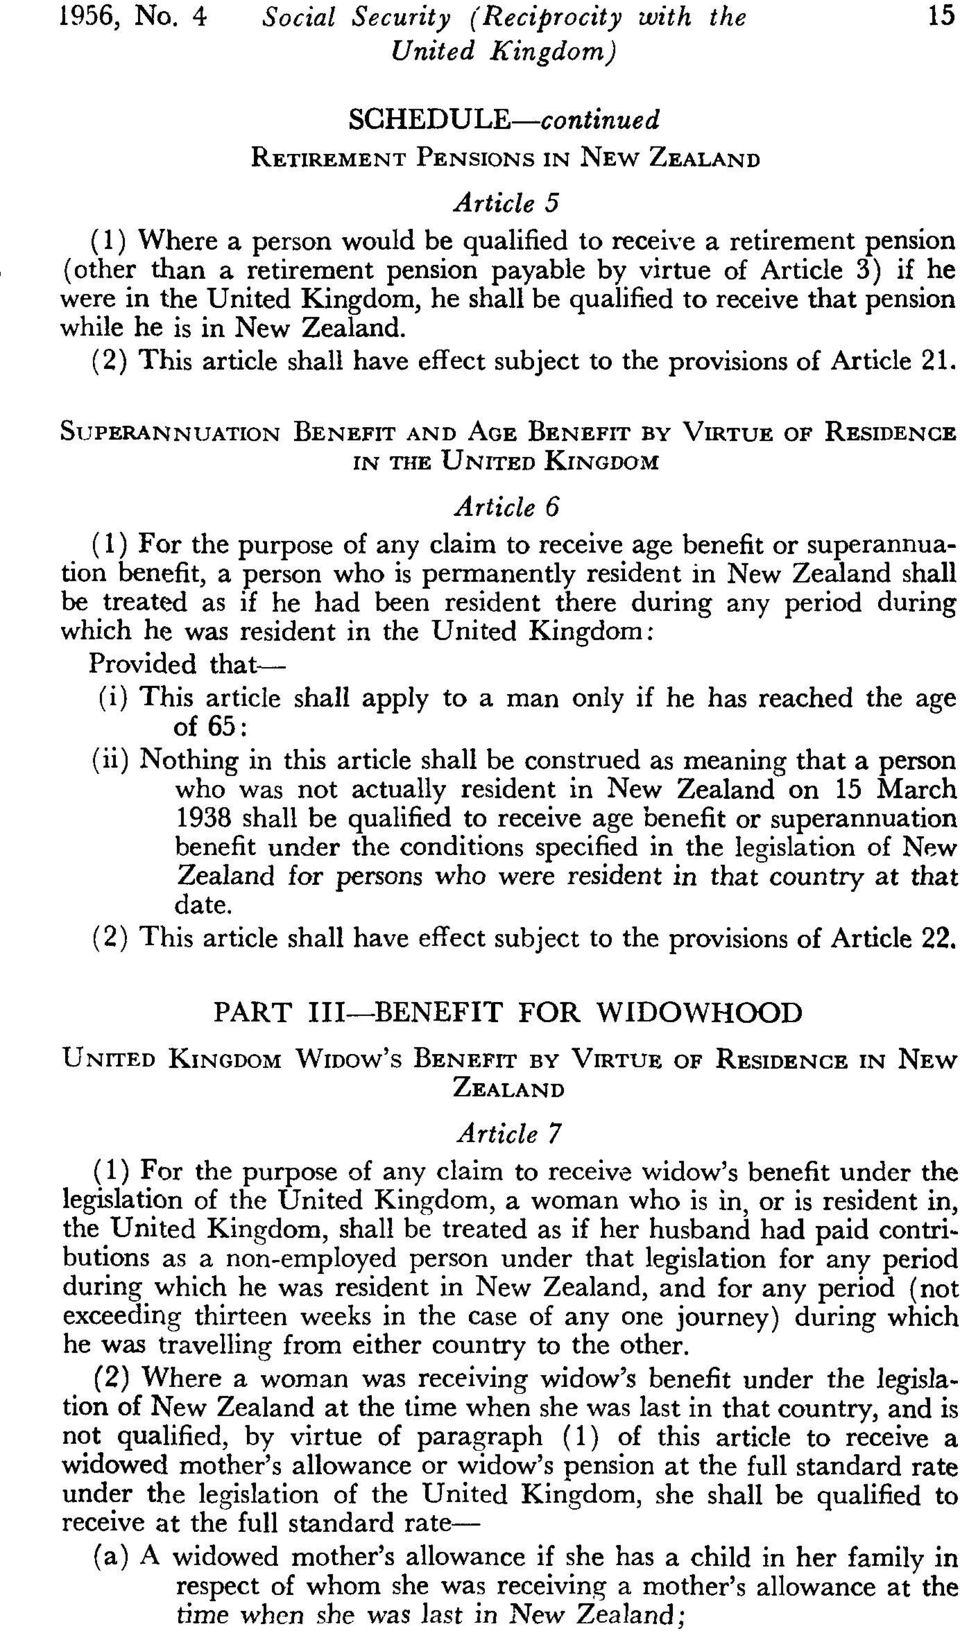 by virtue of Article 3) if he were in the United Kingdom, he shall be qualified to receive that pension while he is in New Zealand.